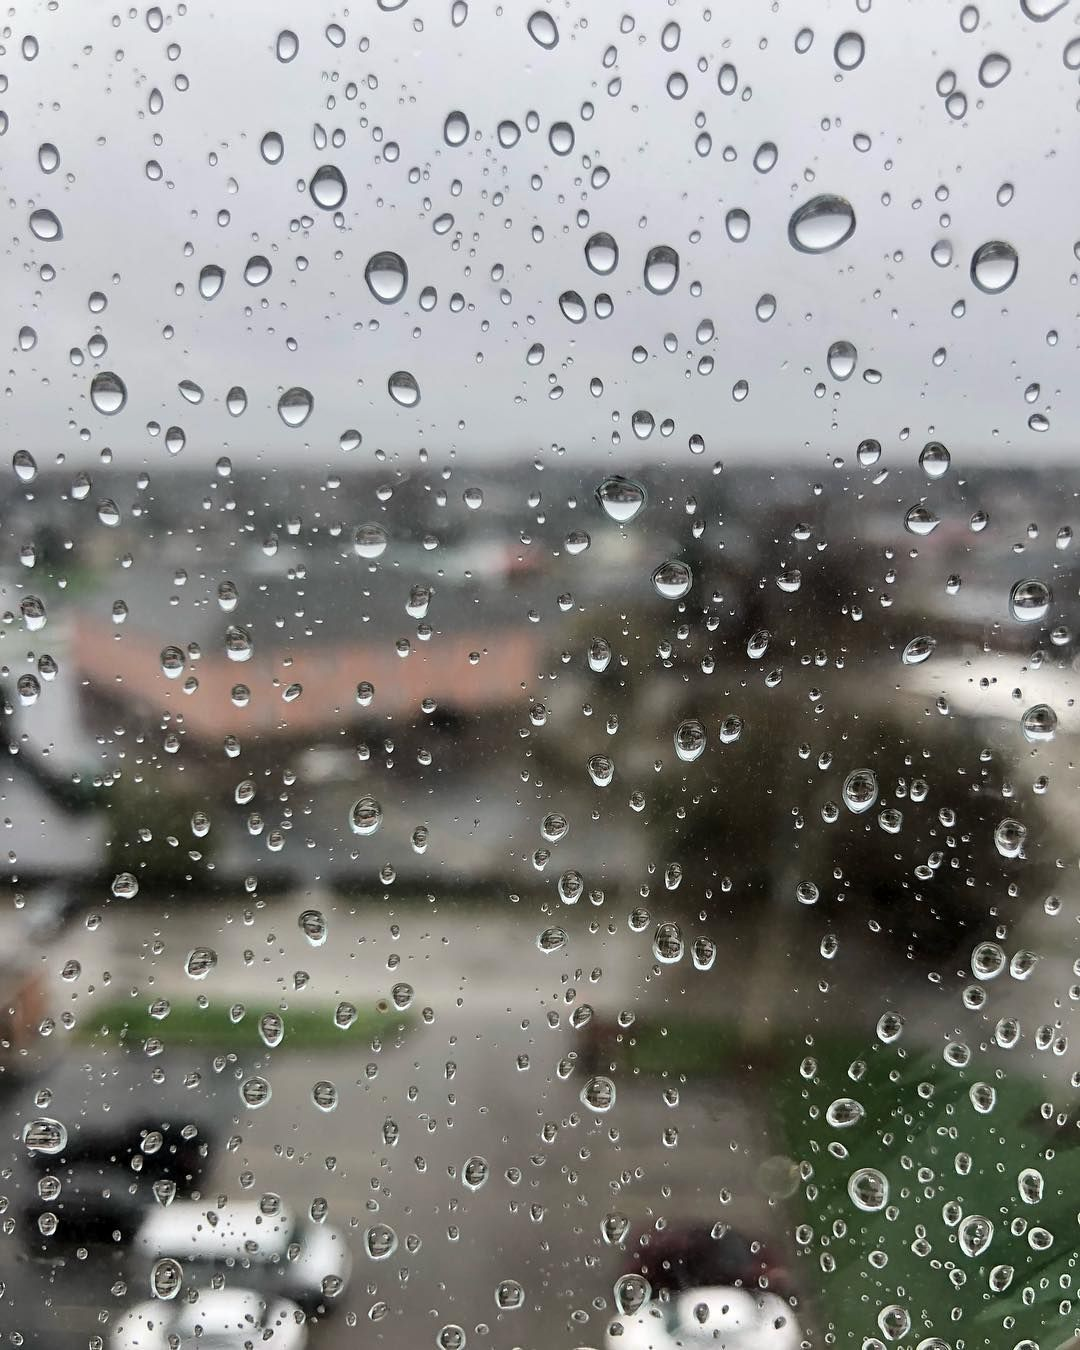 Rain Drops Window Pane Bored Easter Day Green Out Picoftheday Instagood Instamood Rain Drops Window Pane Bored Easter Day G Rain Green Day